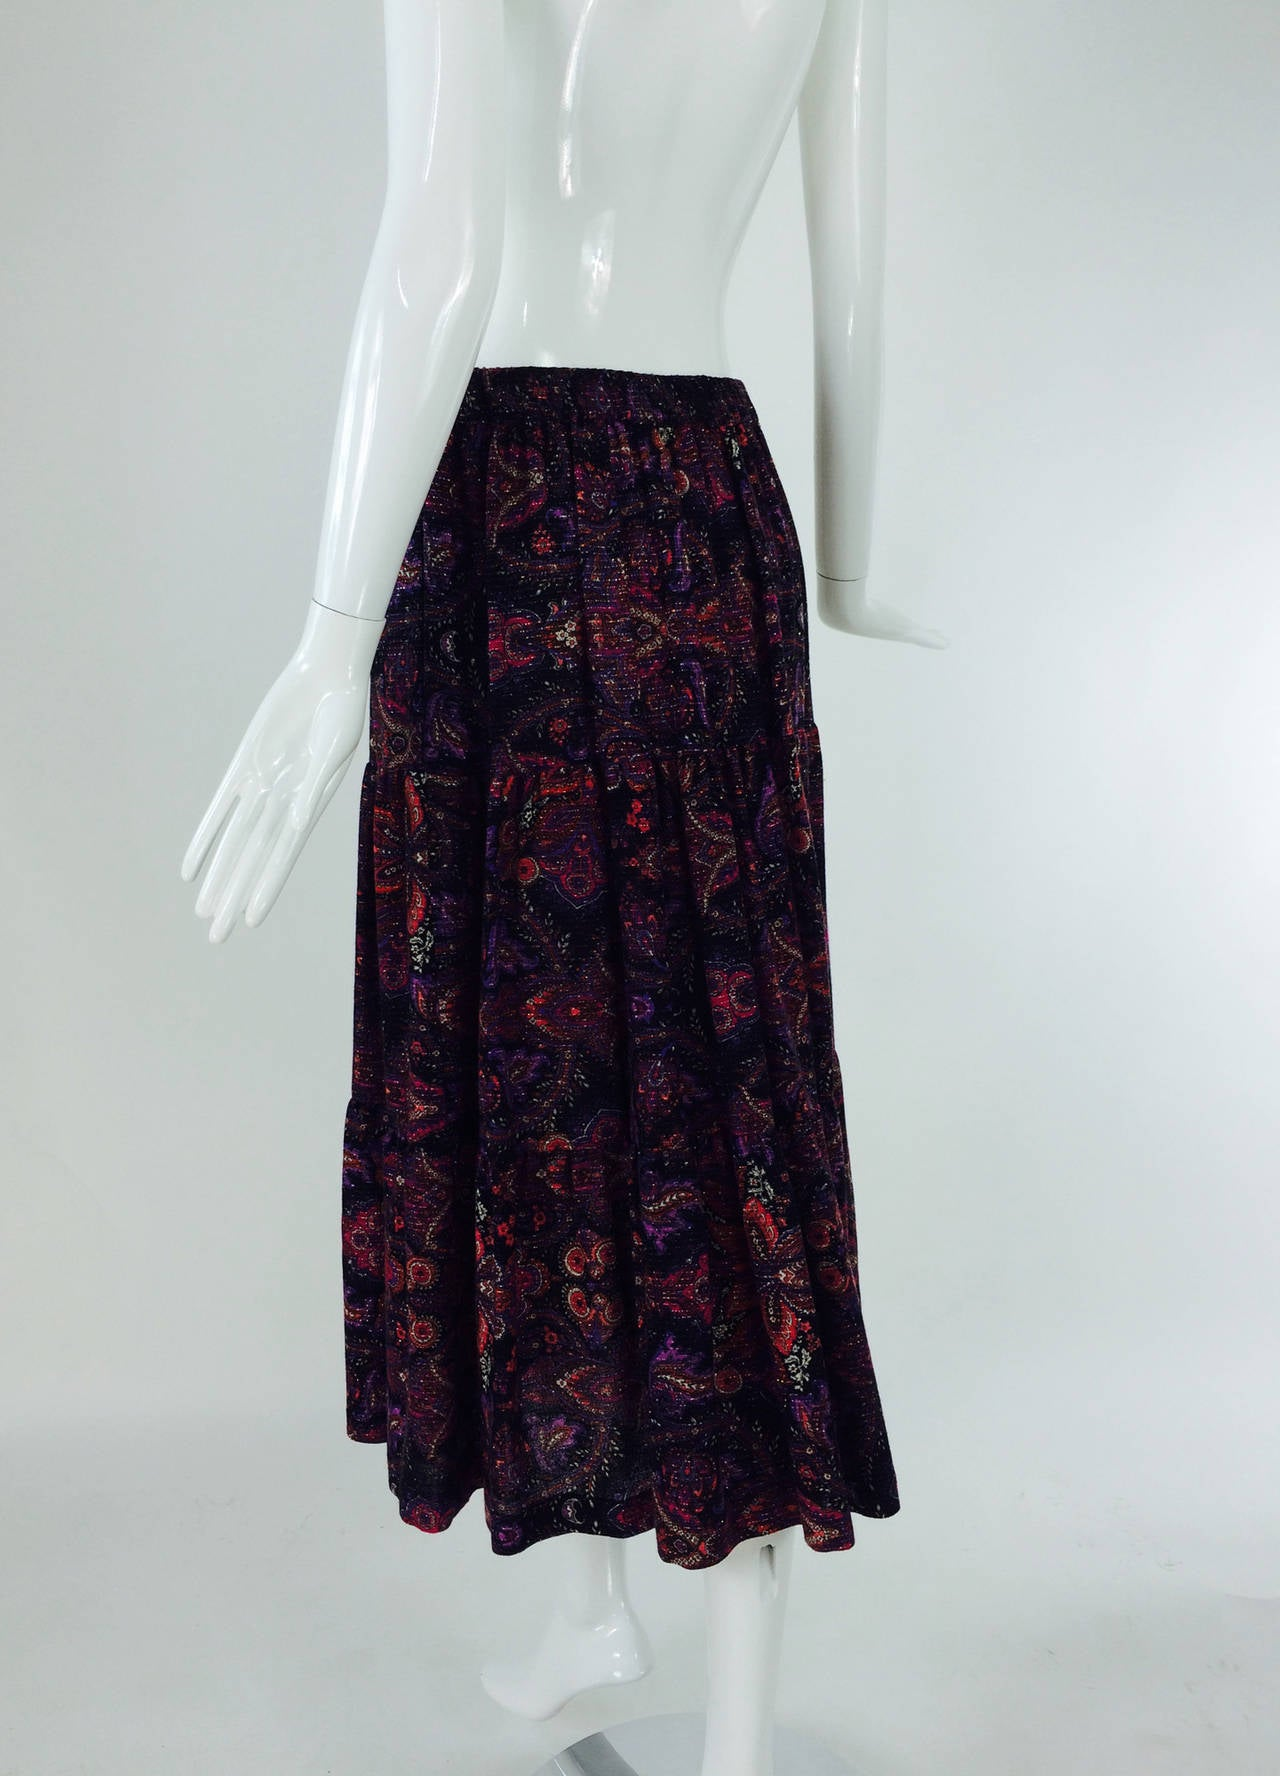 Yves St Laurent YSL Rive Gauche metallic paisley tiered gypsy skirt 1970s For Sale 2